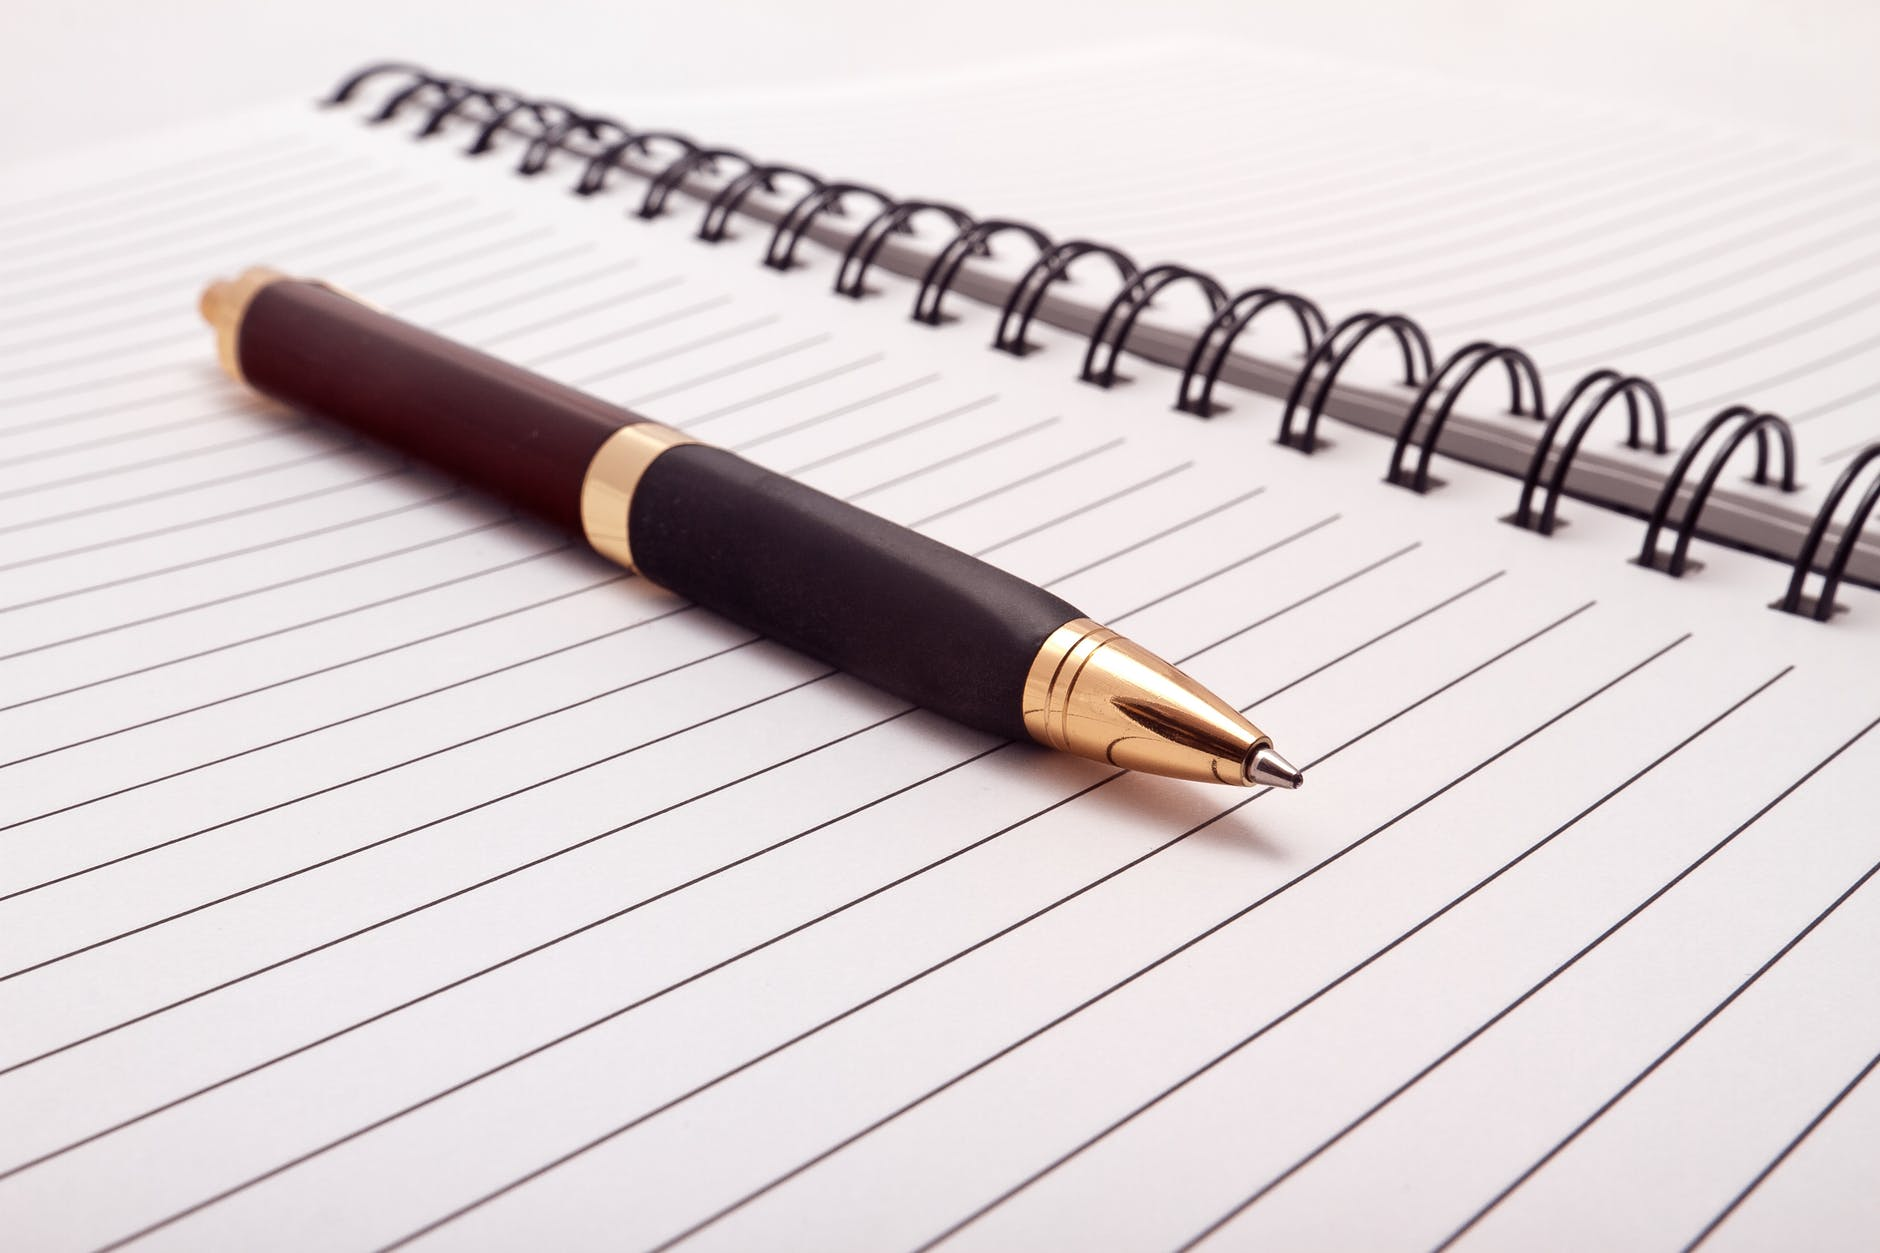 Black Fountain Pen Placed on Spiral Notebook